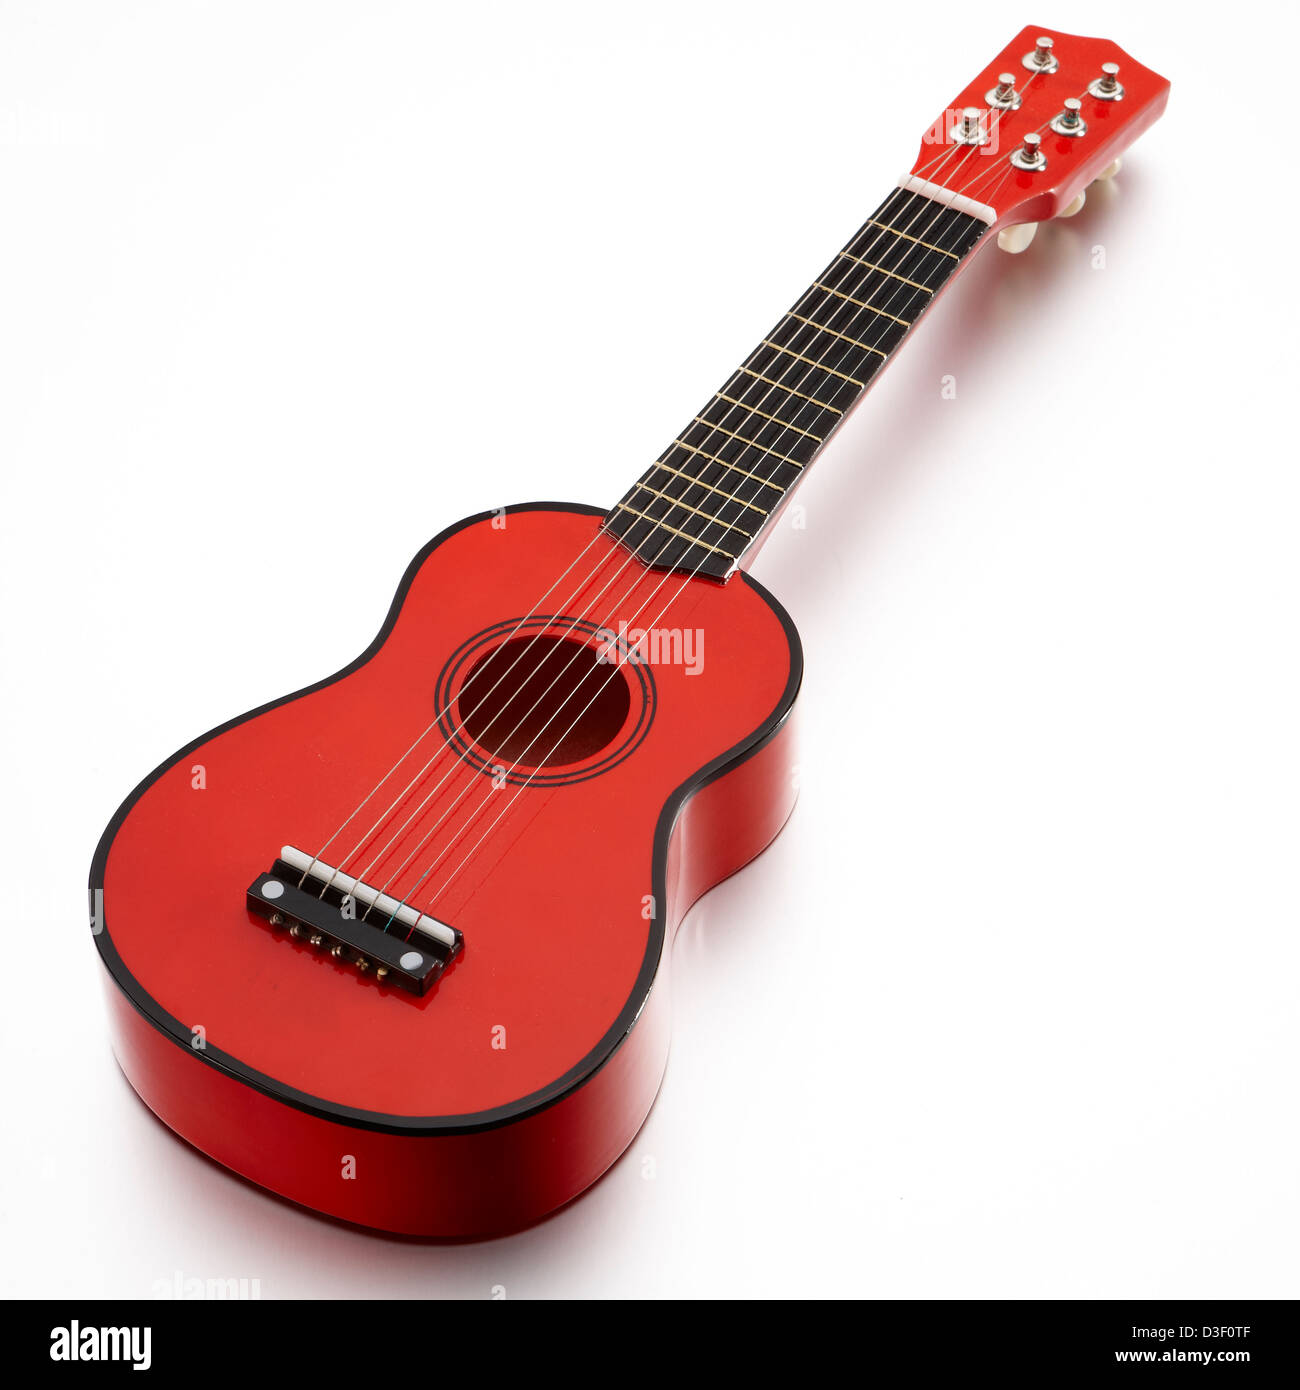 Red wooden toy guitar 6 string - Stock Image